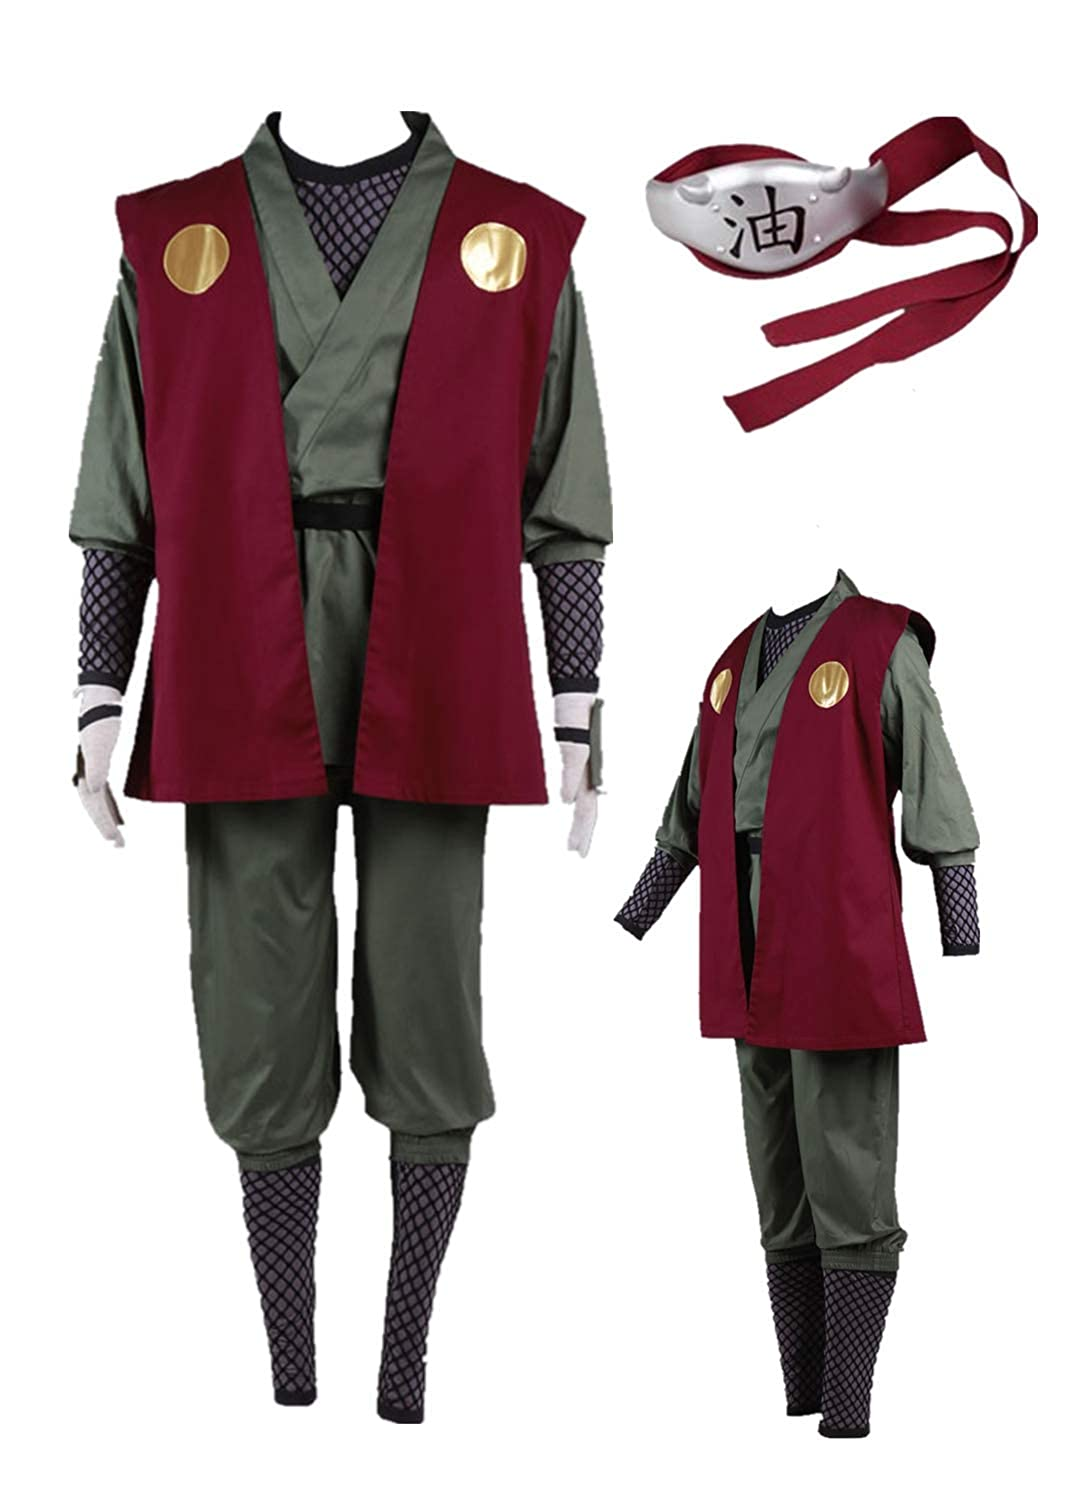 US Size Anime Jiraiya Cosplay Costume Halloween Full Set of Clothing Accessories